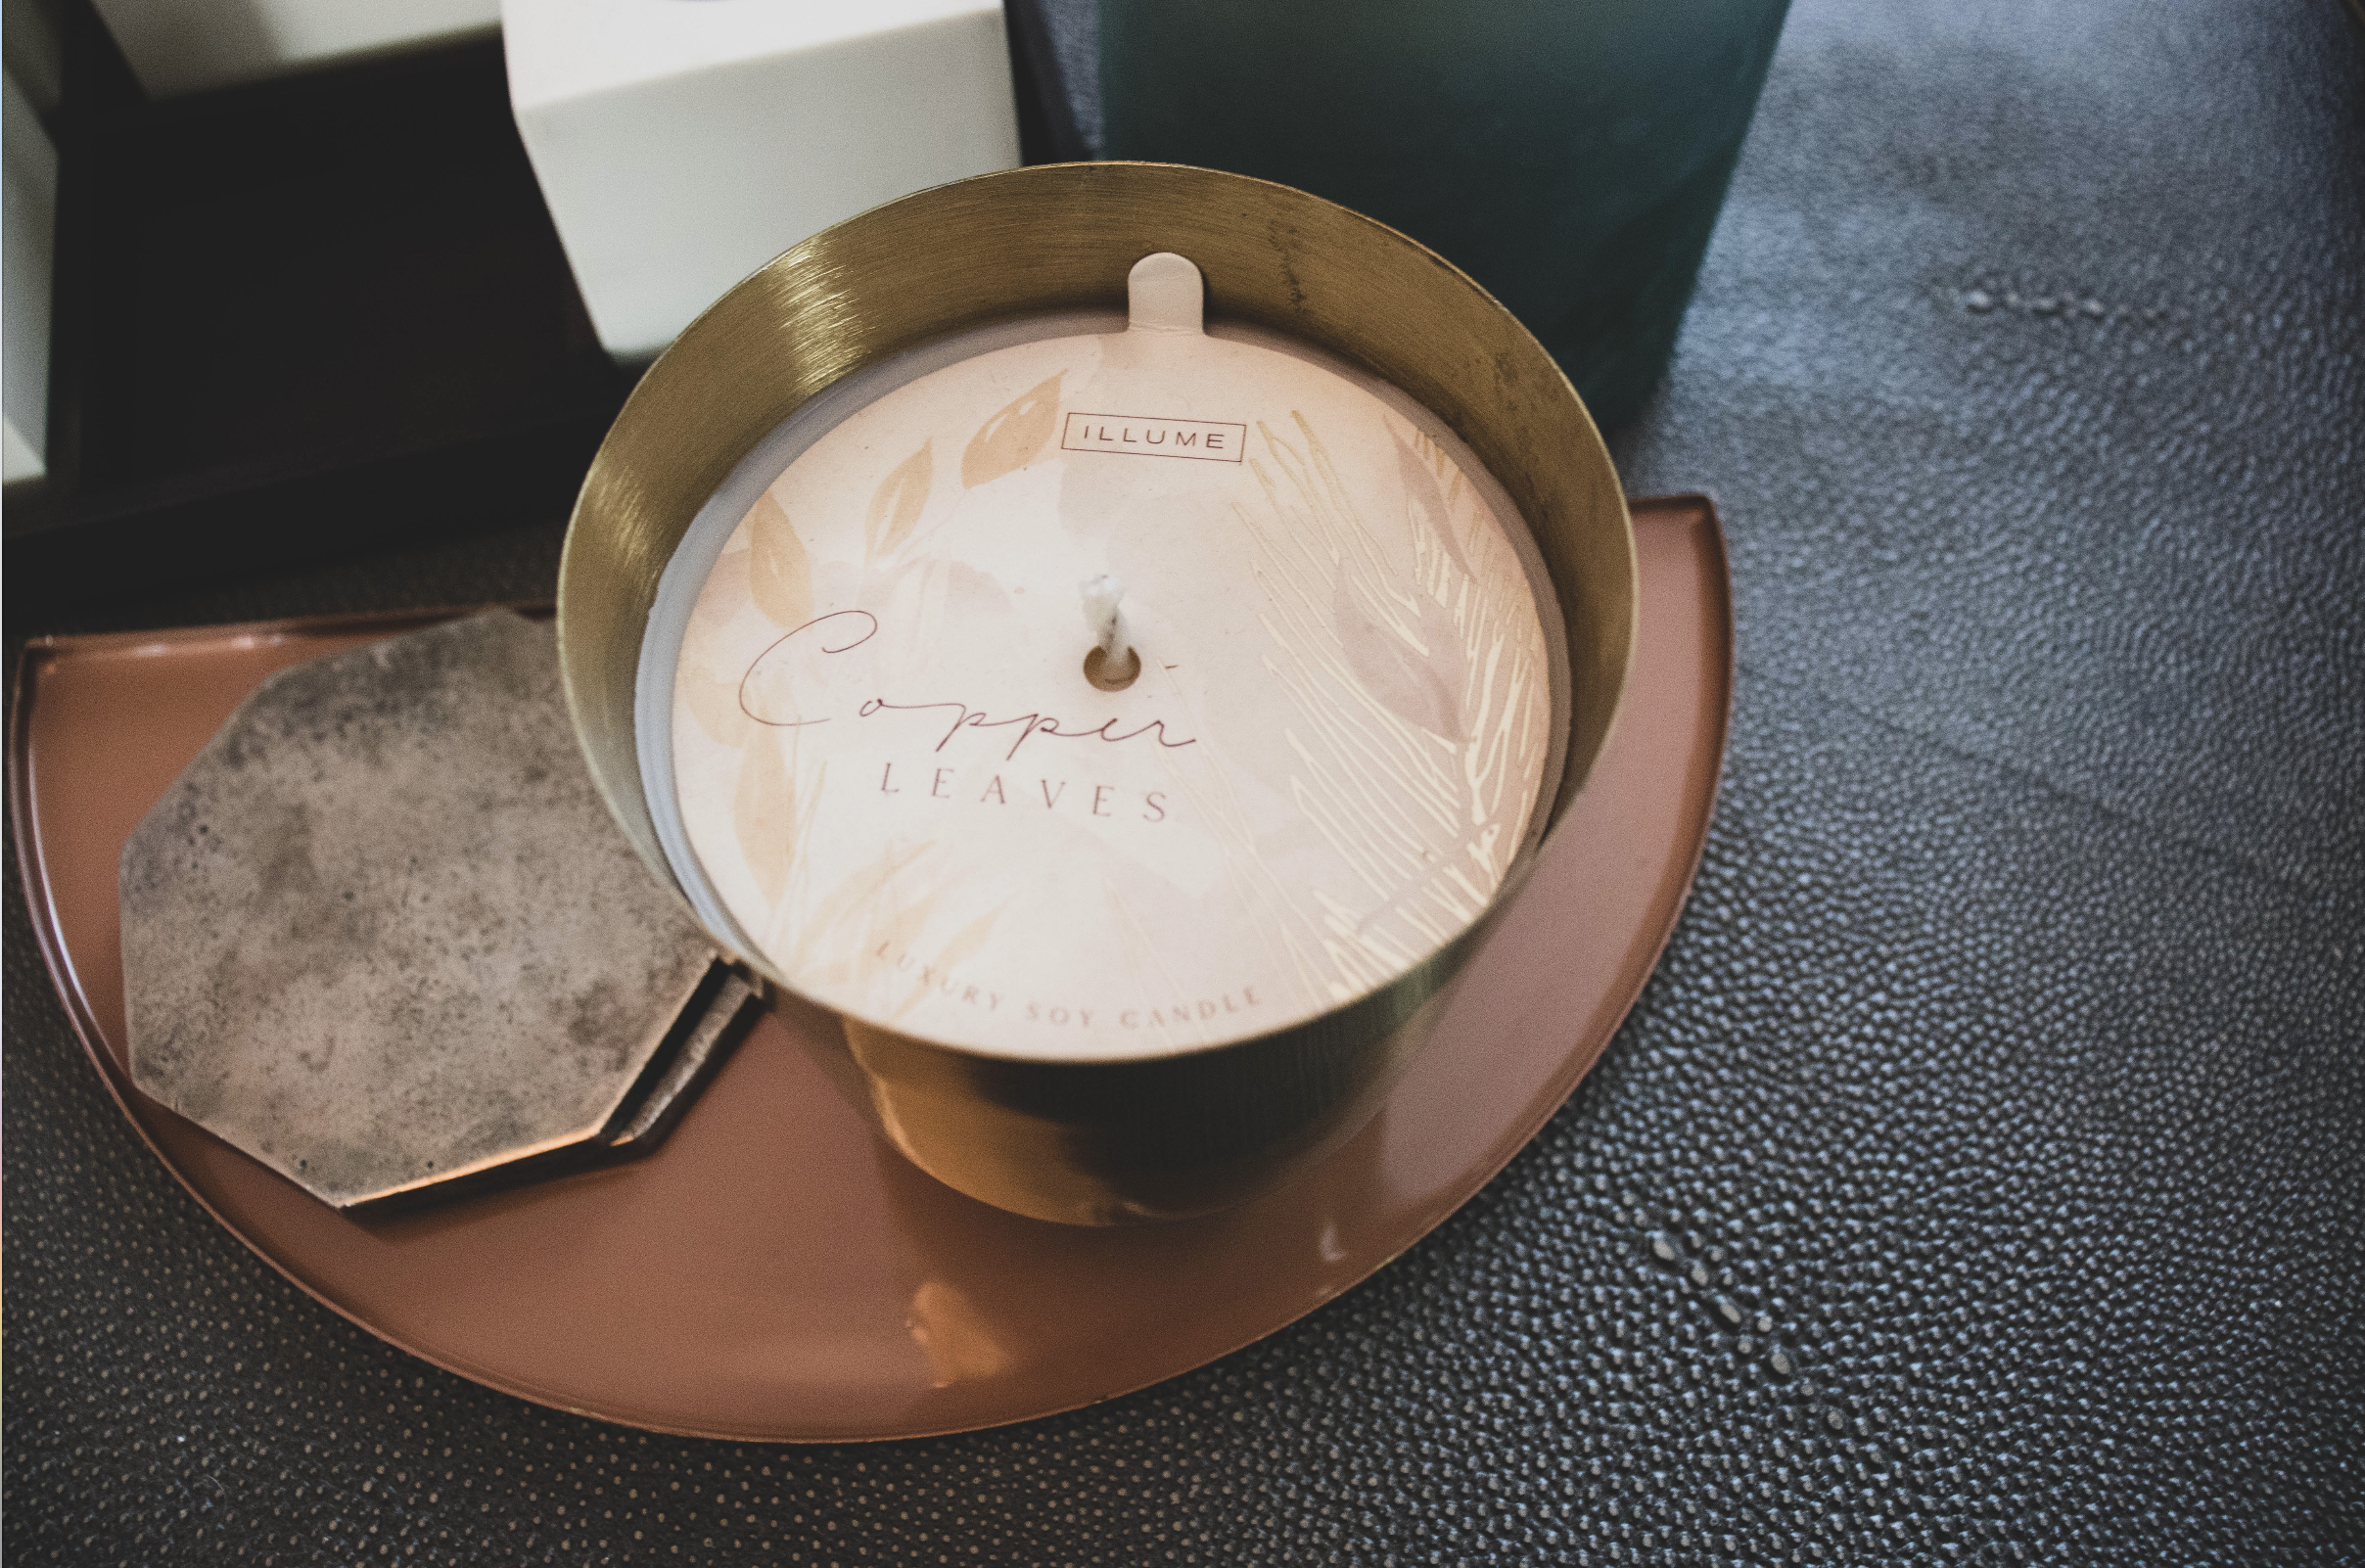 Copper Leaves Candle: One of the best fall scented candles of 2020. The candle is on a leather-topped coffee table next to a black and white block tic-tac-toe.